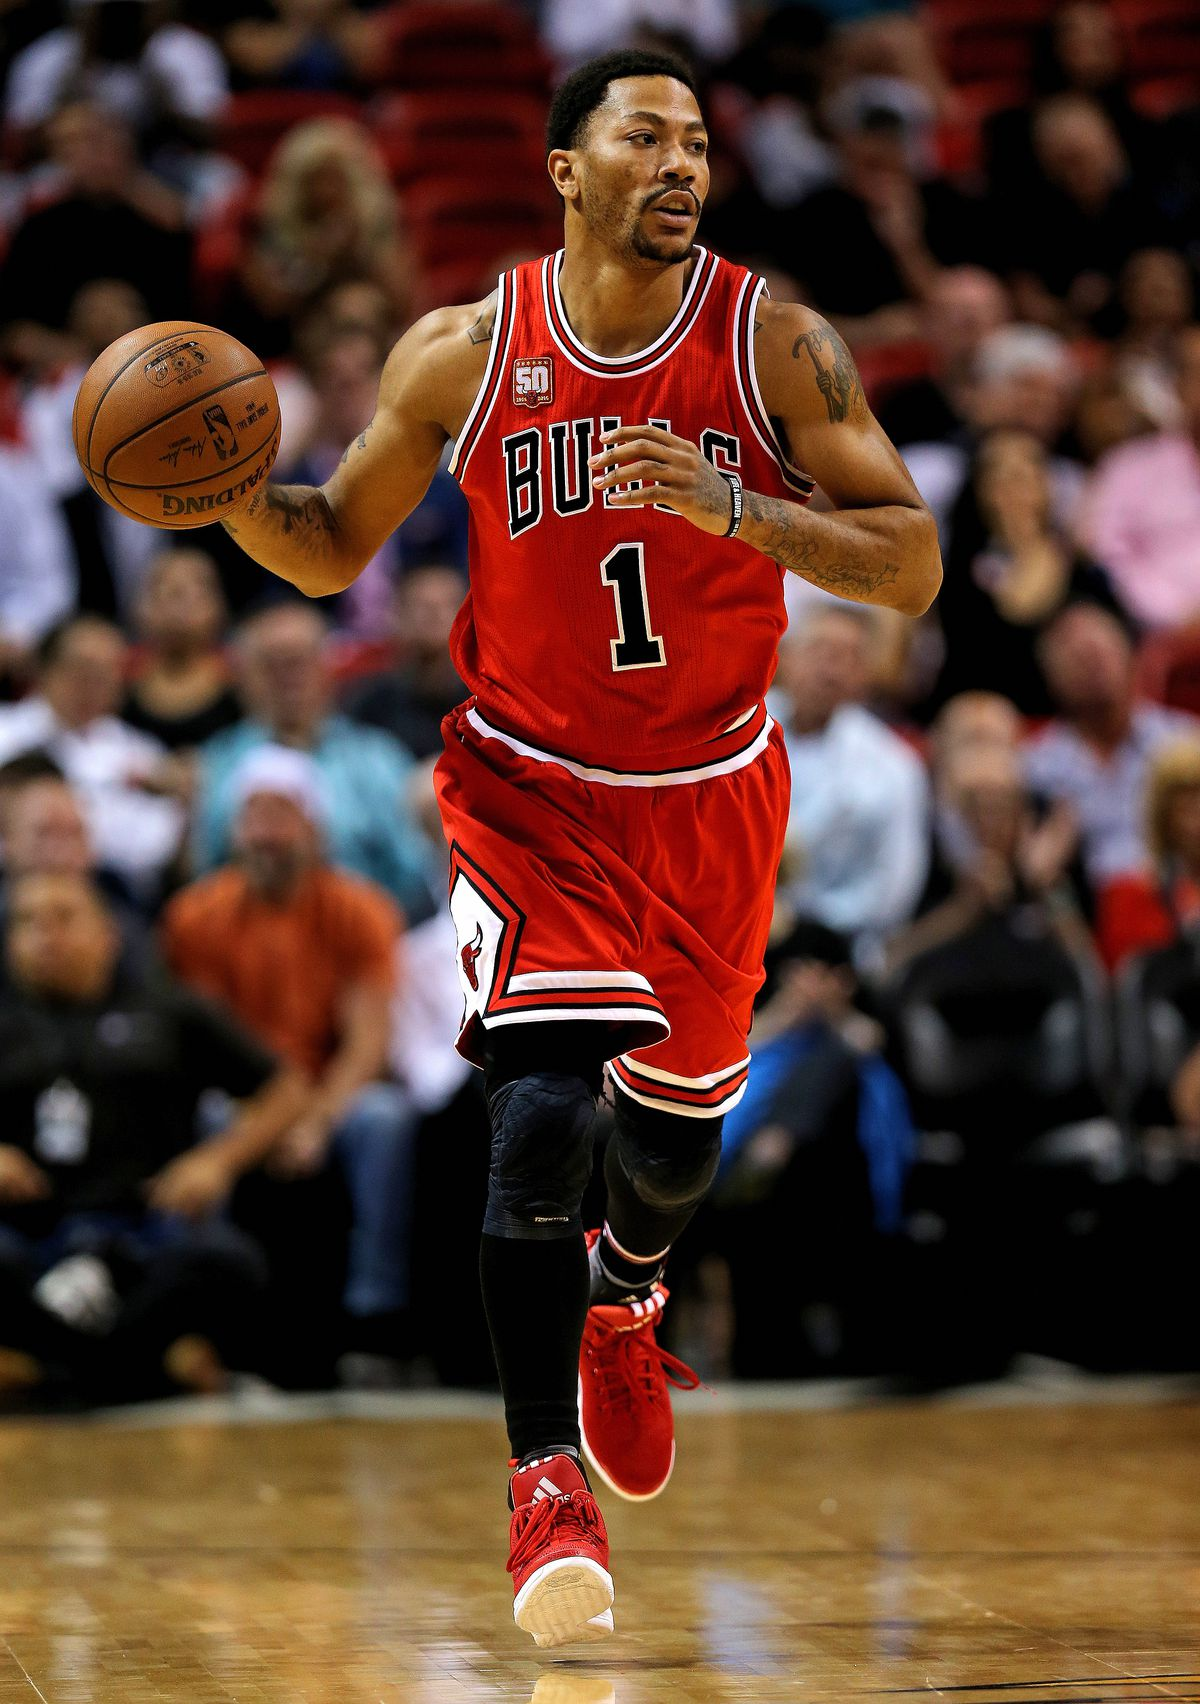 21f4d878e7b6 Derrick Rose drives to the basket during a game against the Miami Heat at  American Airlines